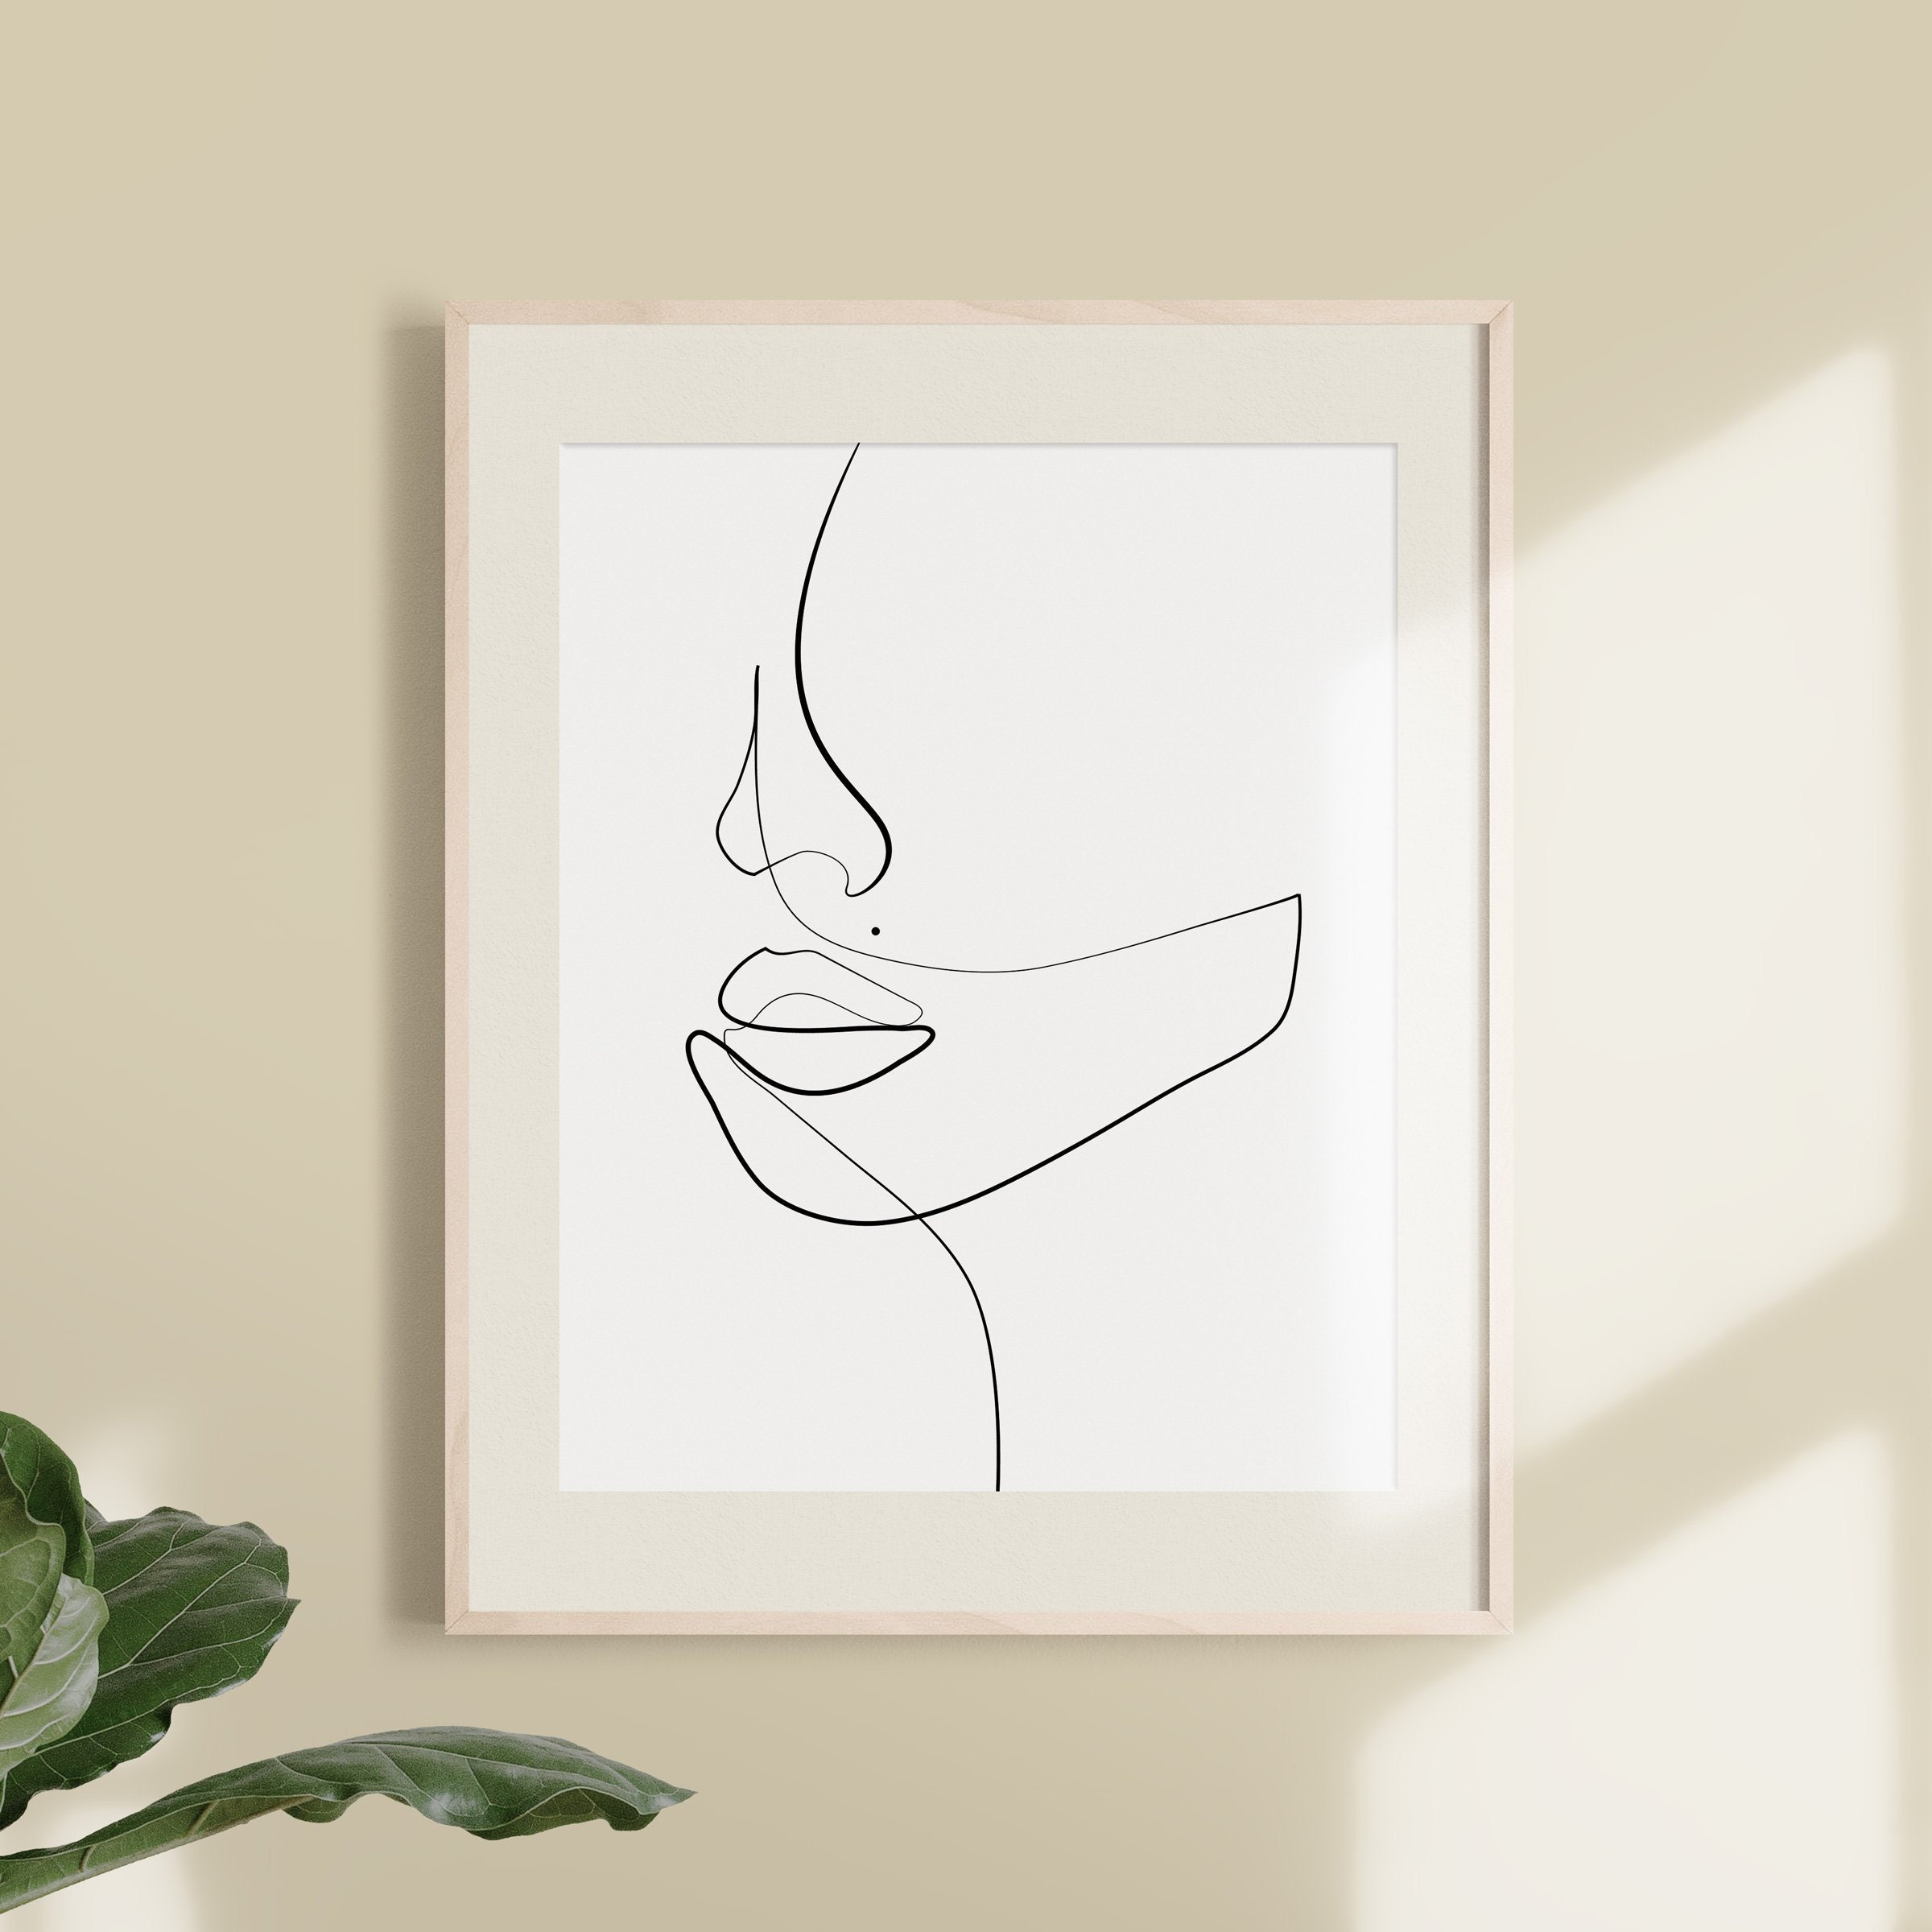 Woman One Line Drawing Face Figure Abstract Simple Line   Etsy